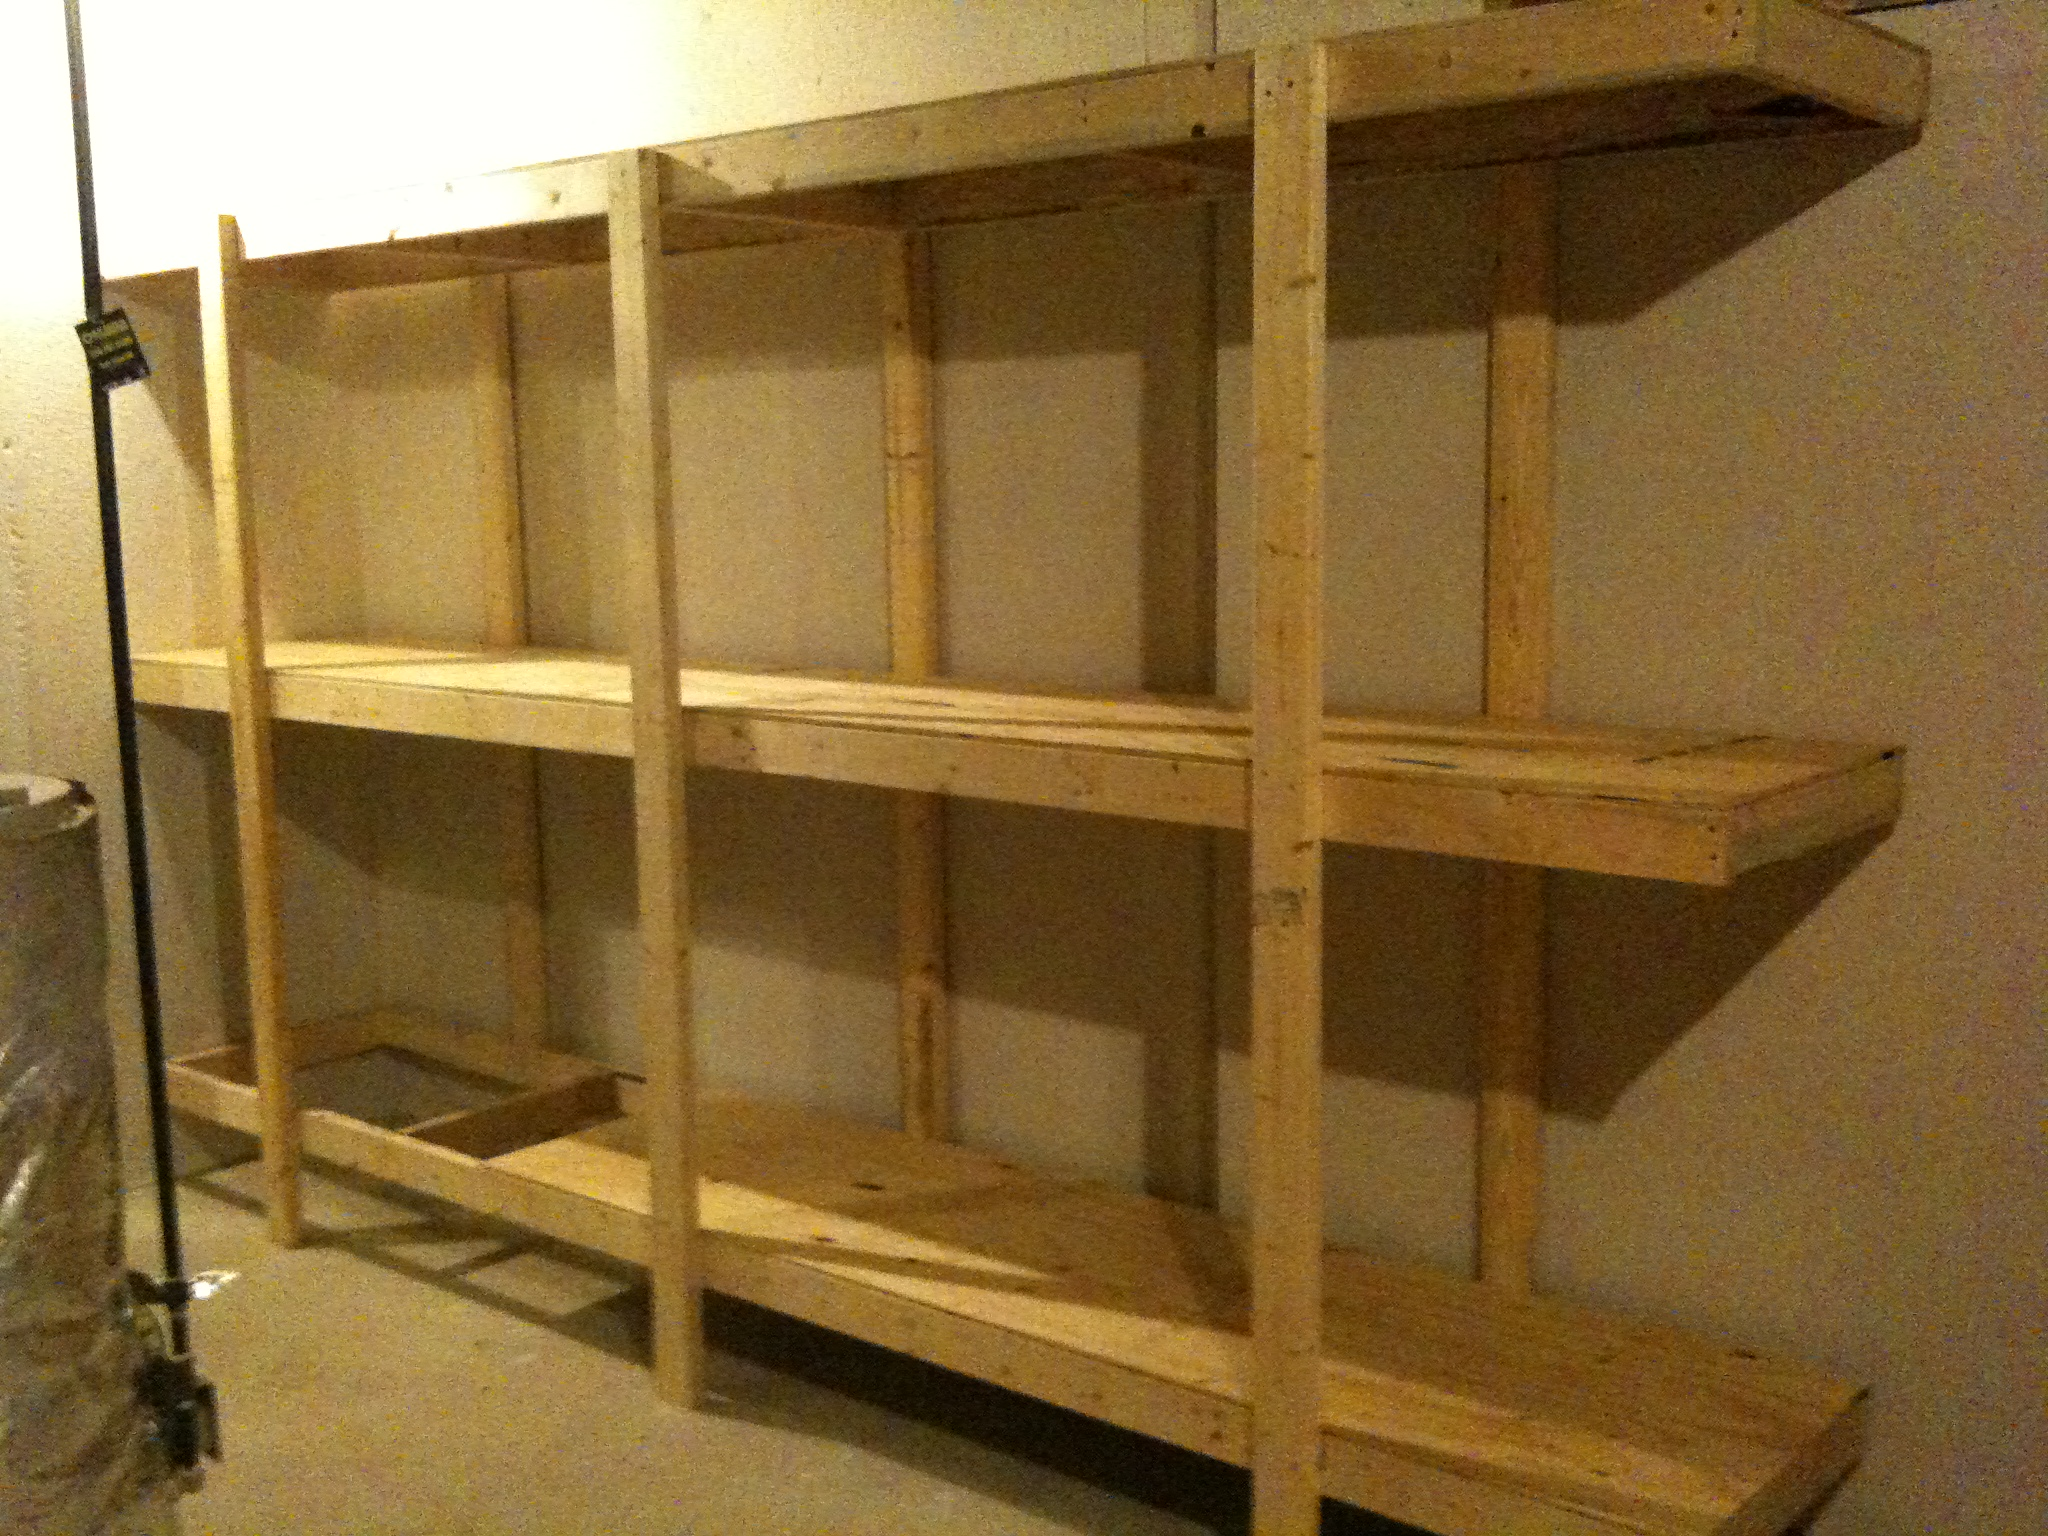 Build Easy Free Standing Shelving Unit For Basement Or Garage 7 Steps With Pictures Instructables